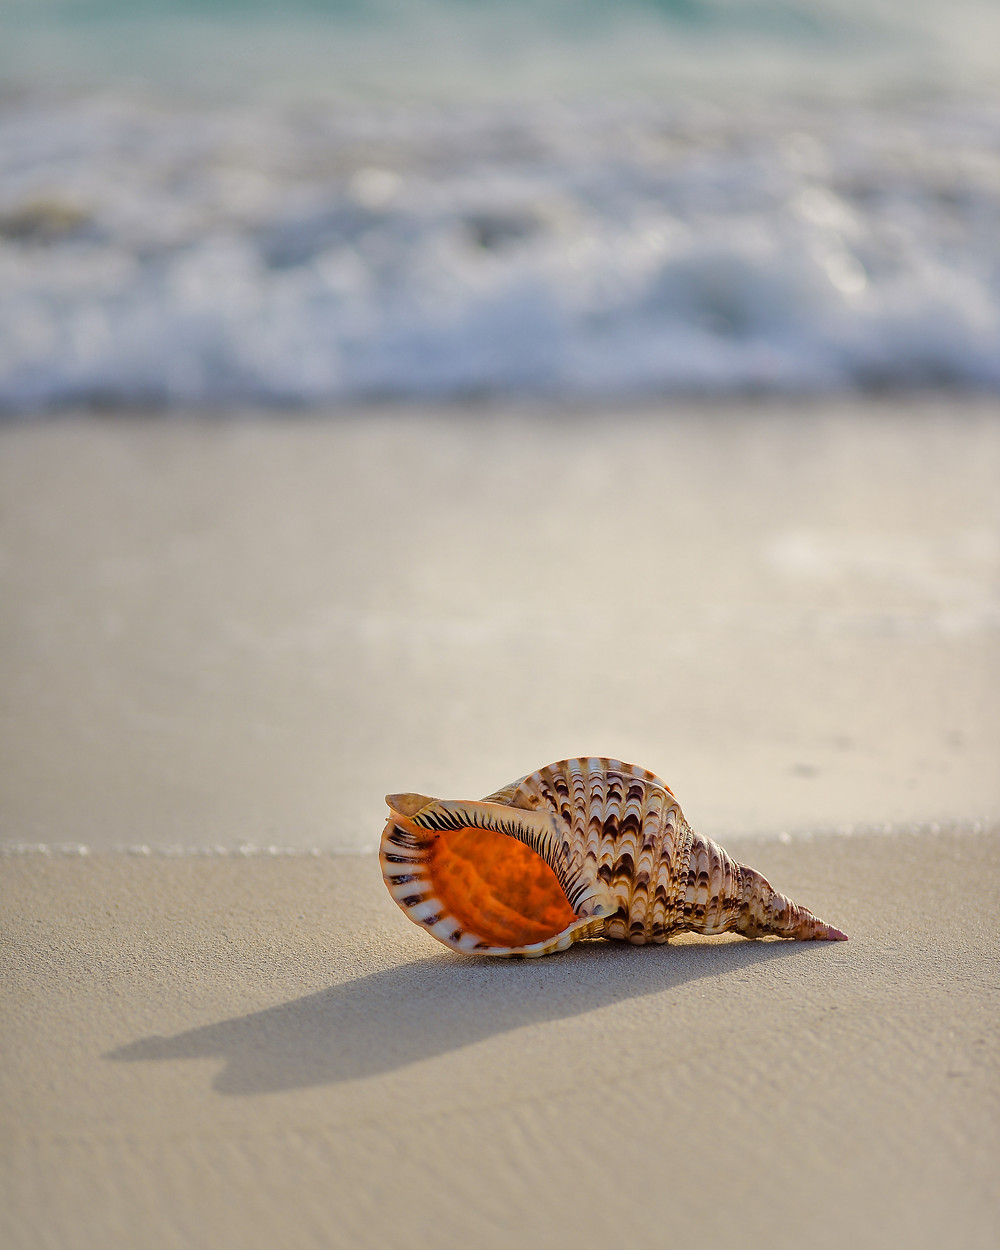 Live with awe and wonder like a child. Beach shells showcase the beauty around us.